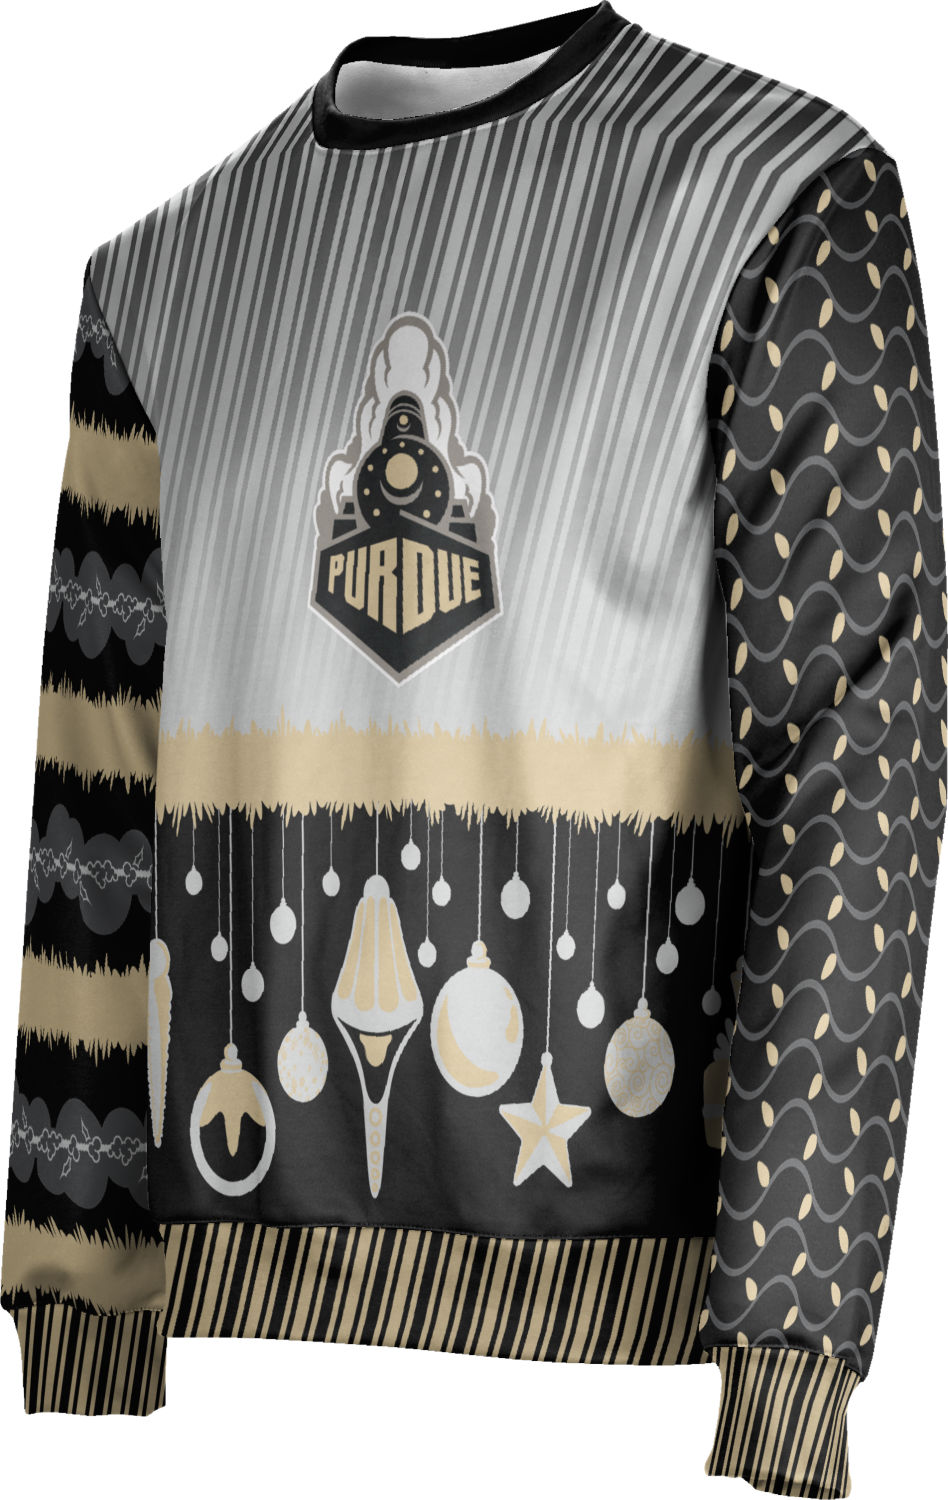 PU ProSphere Men/'s Purdue University Ugly Holiday Decoration Sweater Apparel